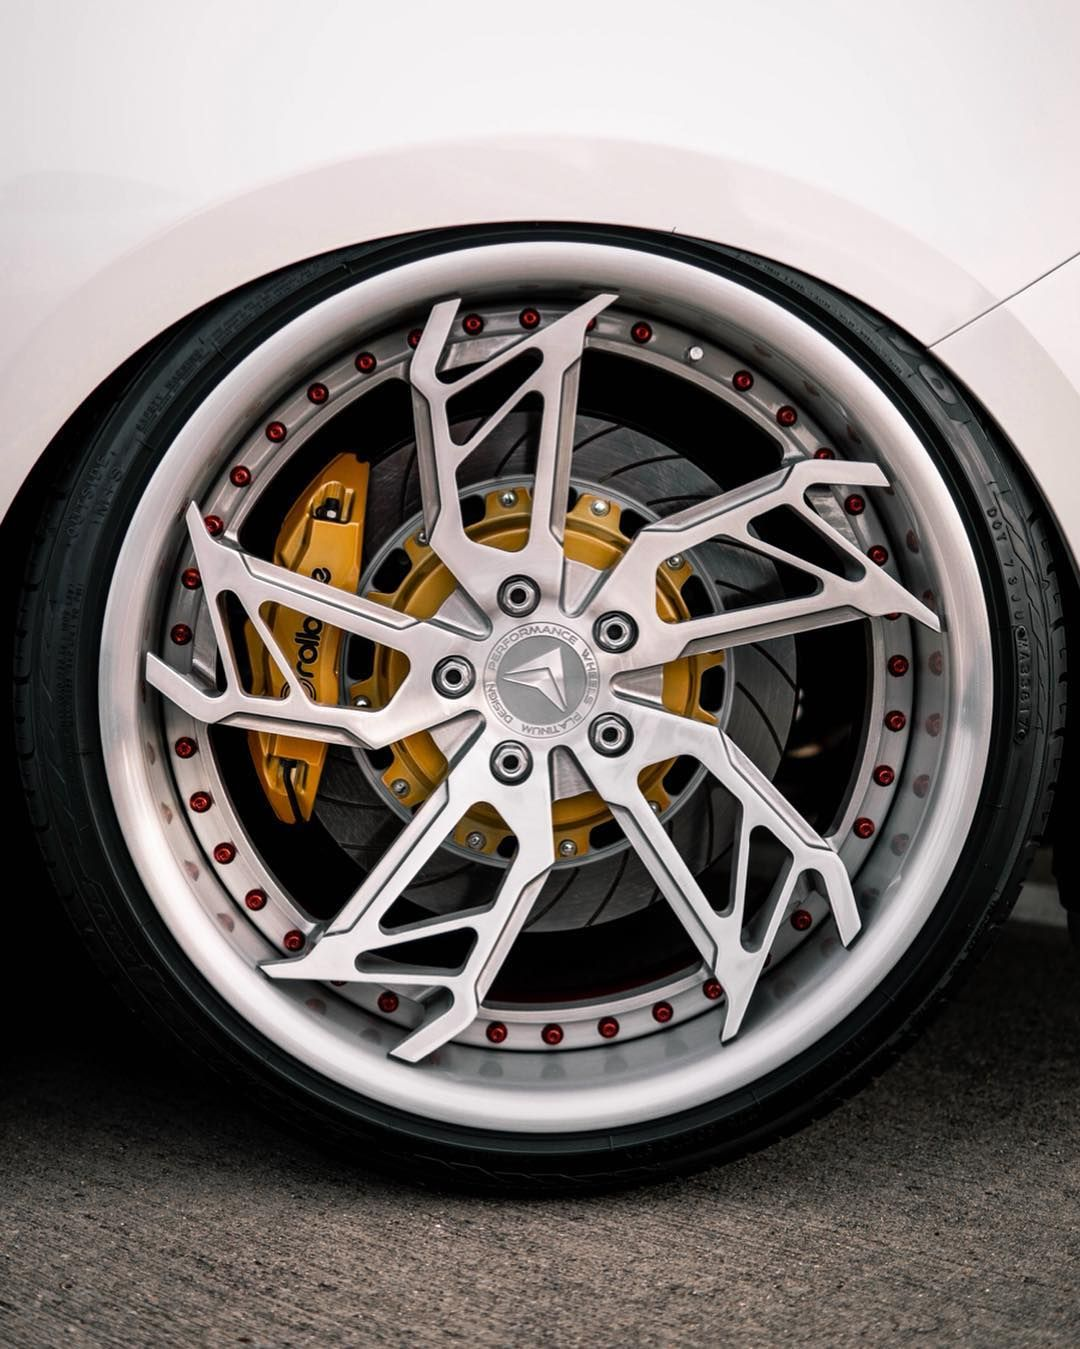 Pin By Carseekr On Stance Rims For Cars Wheel Rims